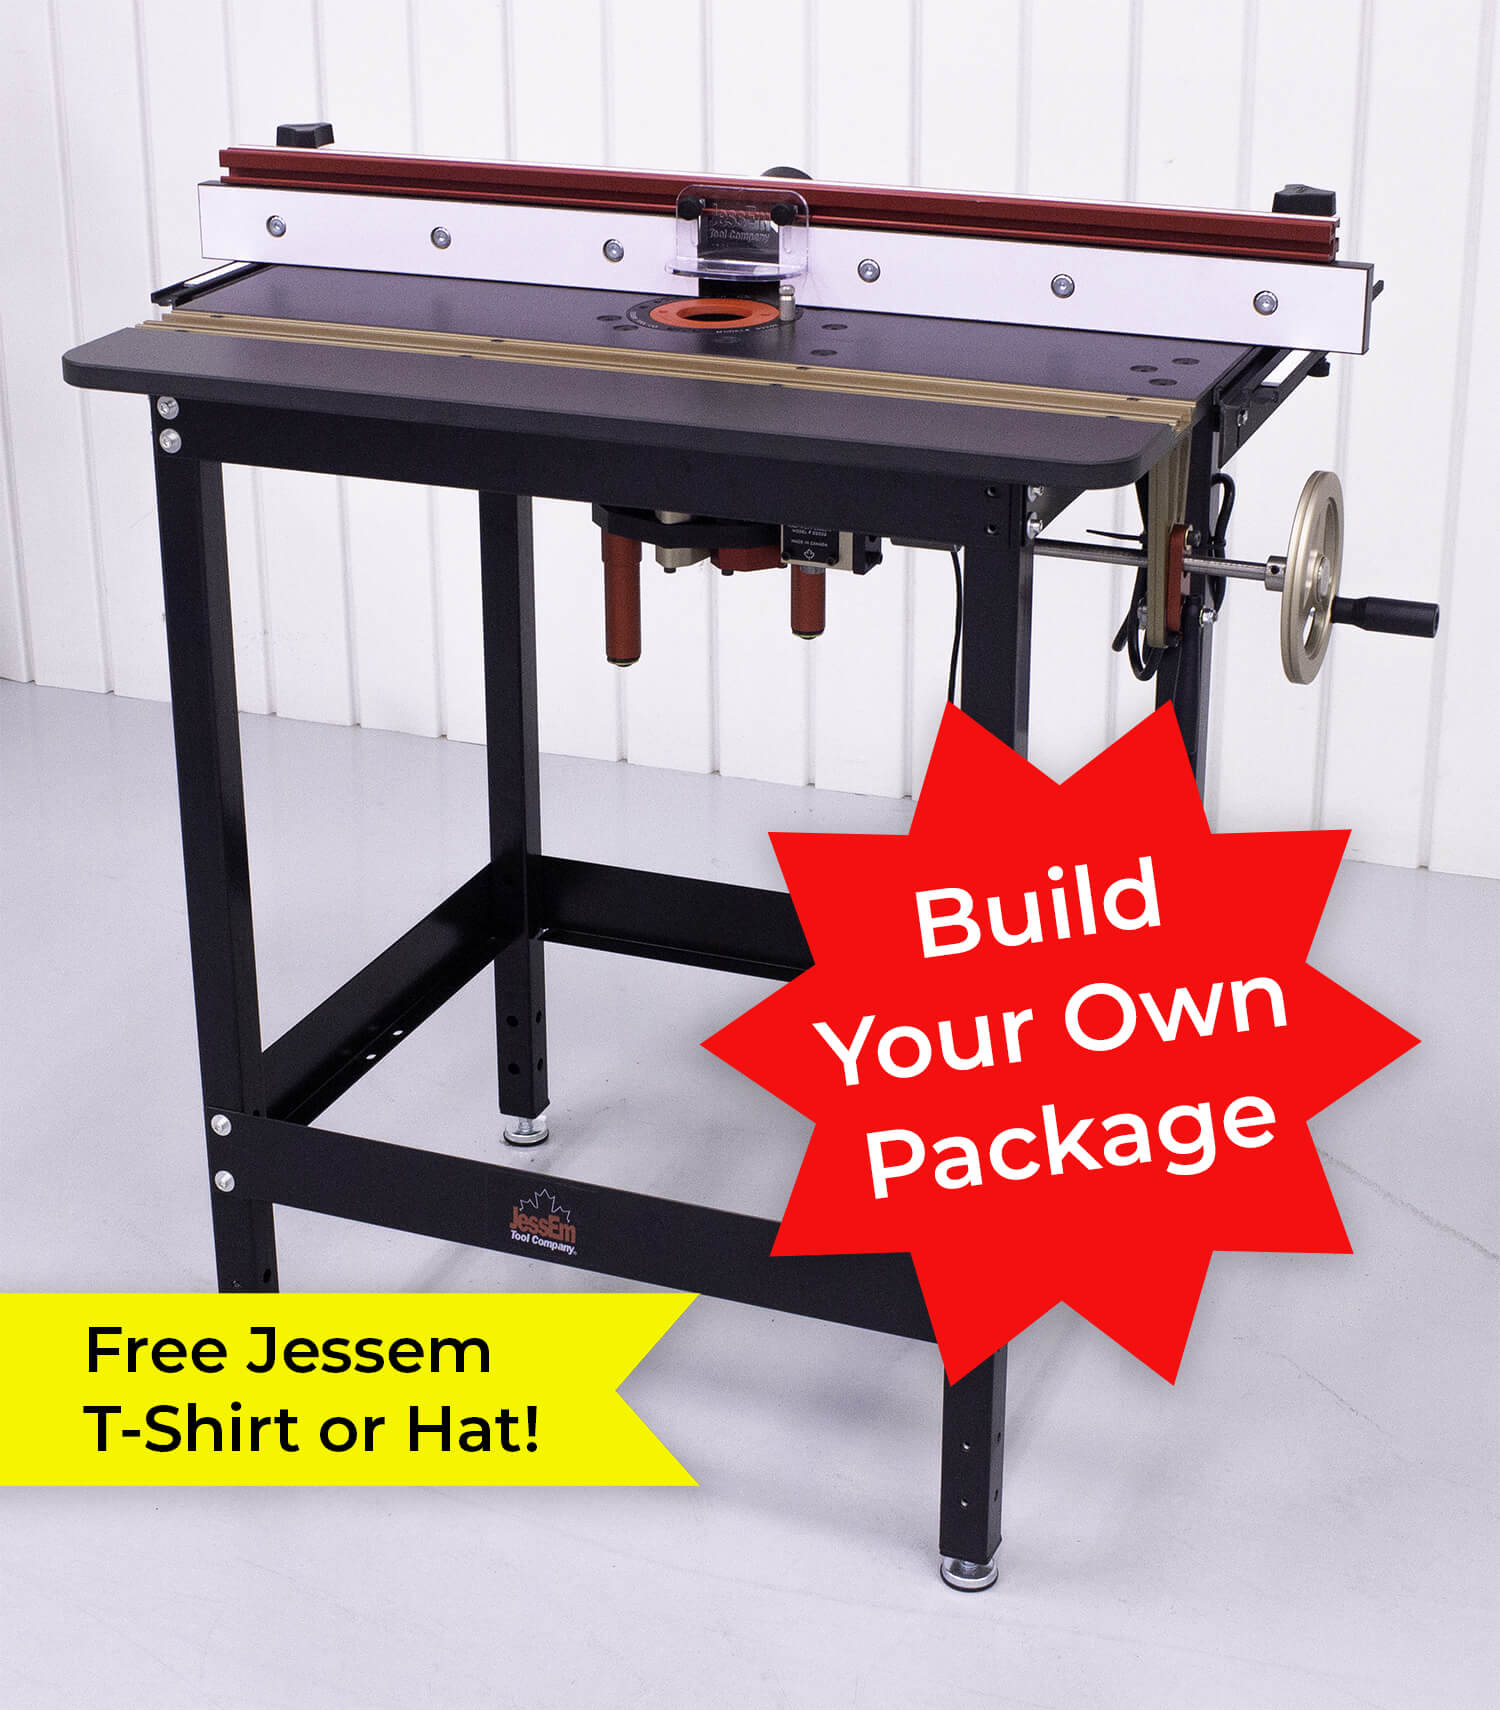 Jessem Mast-R-Lift II Excel Router Table Package - Build Your Own | PMC Woodworking Machinery & Tools | Hammond, LA